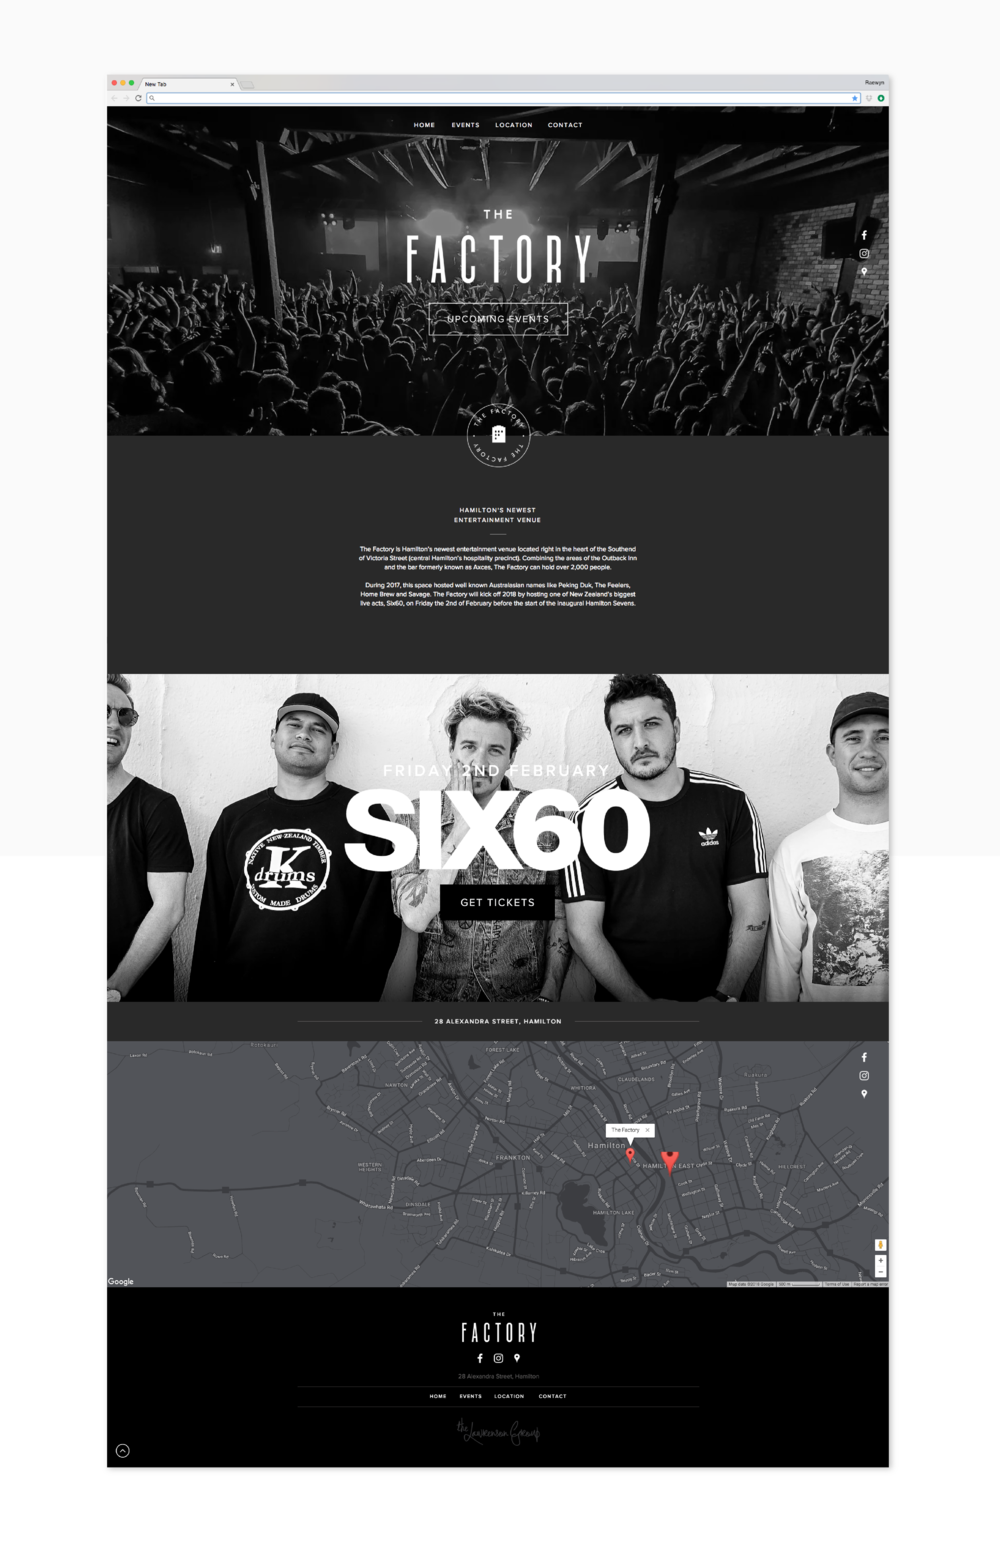 Thefactory website@2x.png